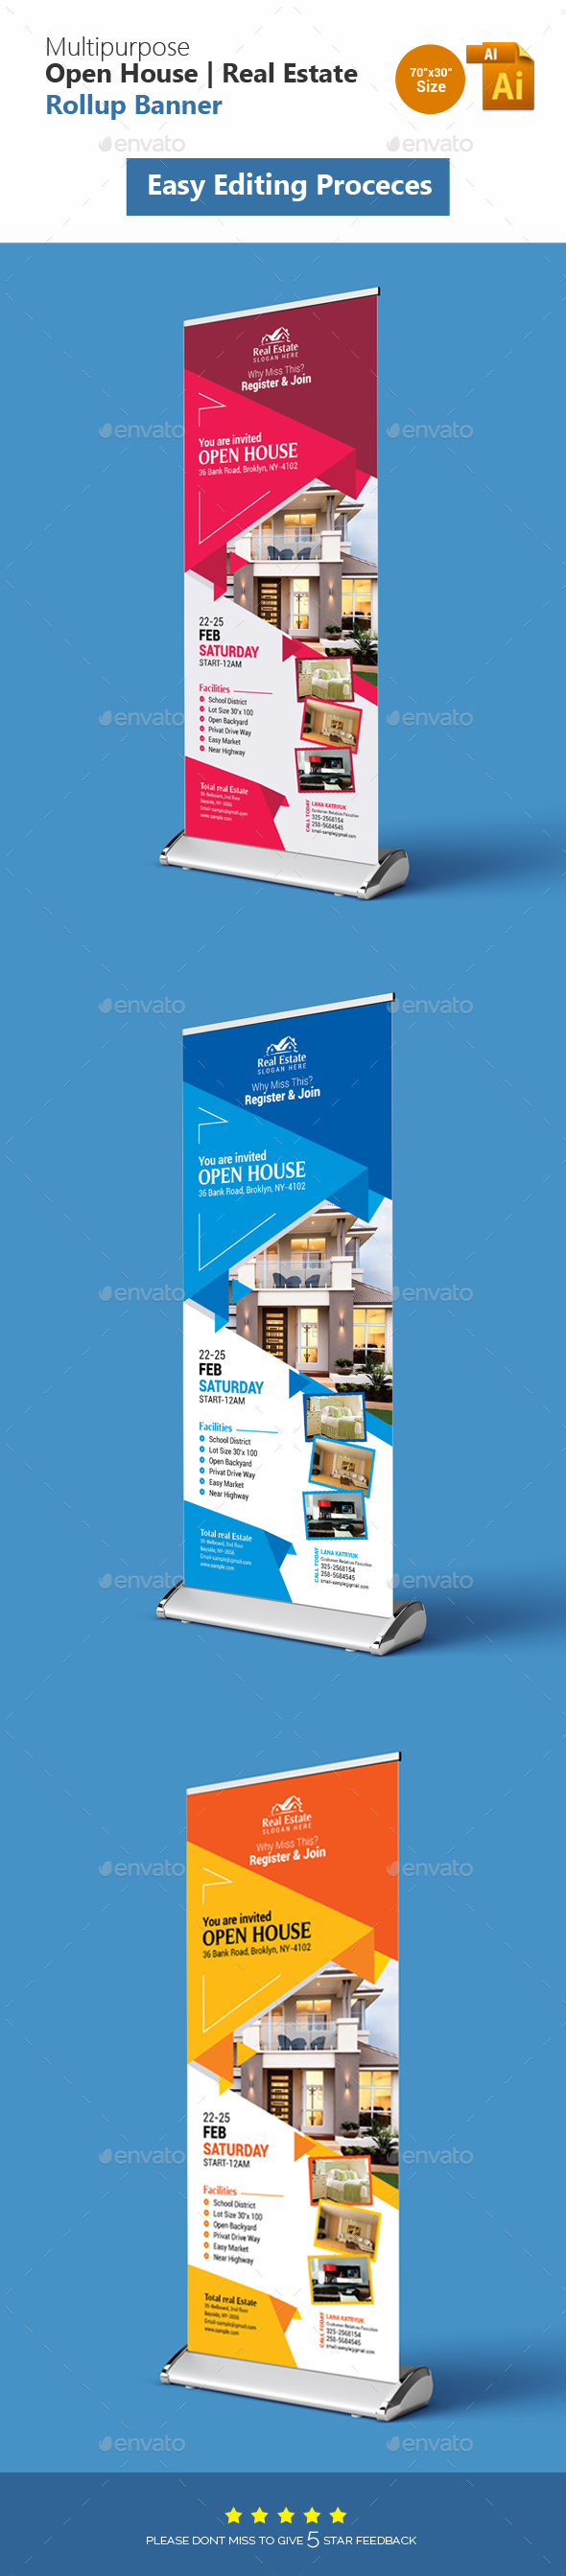 Open House Real Estate Rollup Banner - Corporate Flyers